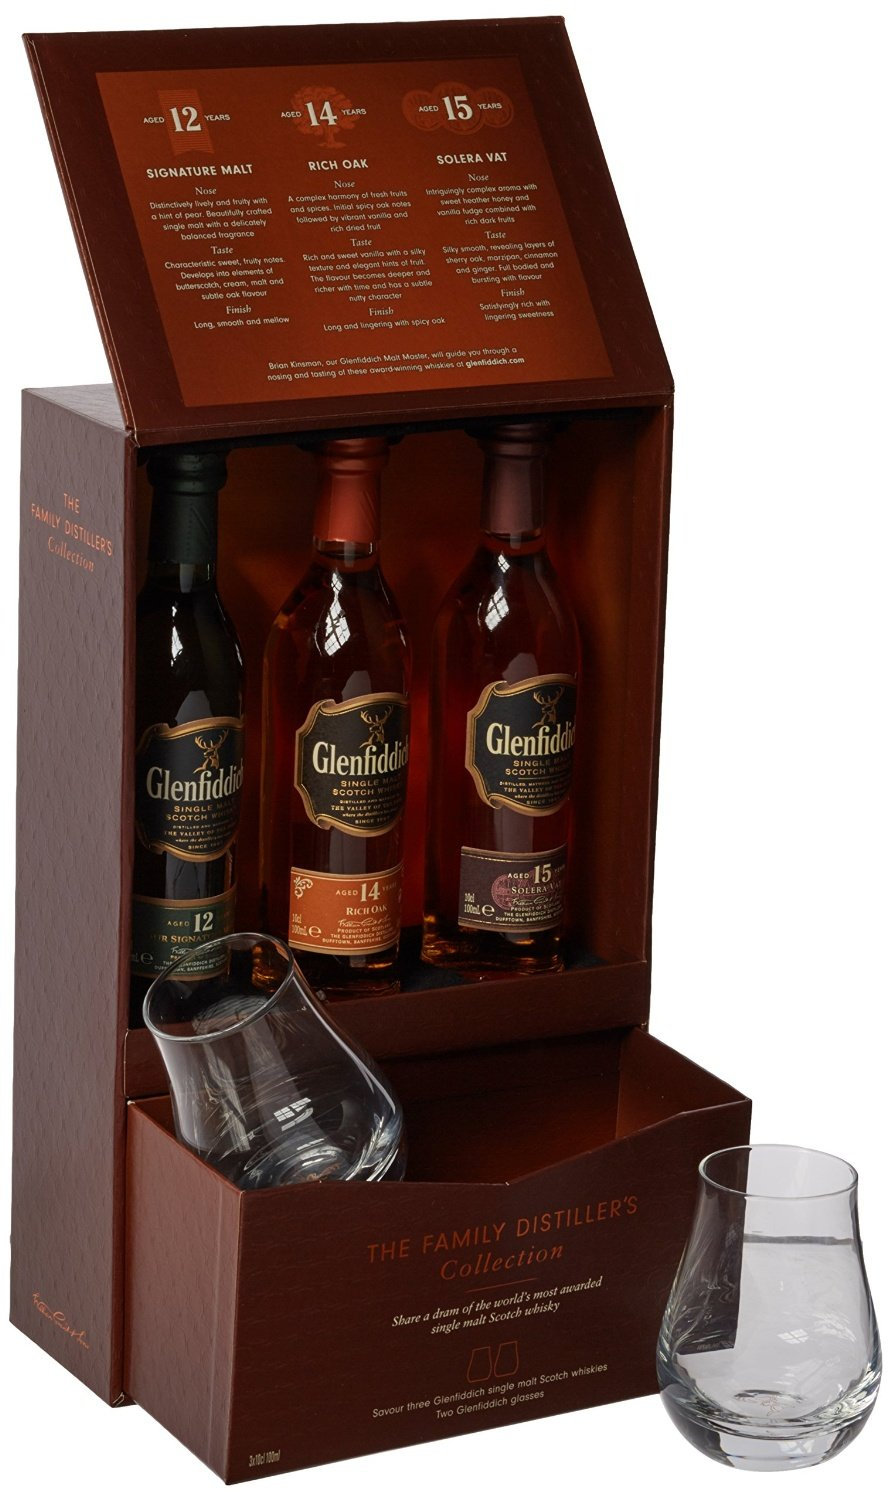 Glenfiddich Family Distillers Collection with 2 Glasses Gift Pack 3 x 10 cl Amazon.co.uk Grocery  sc 1 st  Amazon UK & Glenfiddich Family Distillers Collection with 2 Glasses Gift Pack ... Aboutintivar.Com